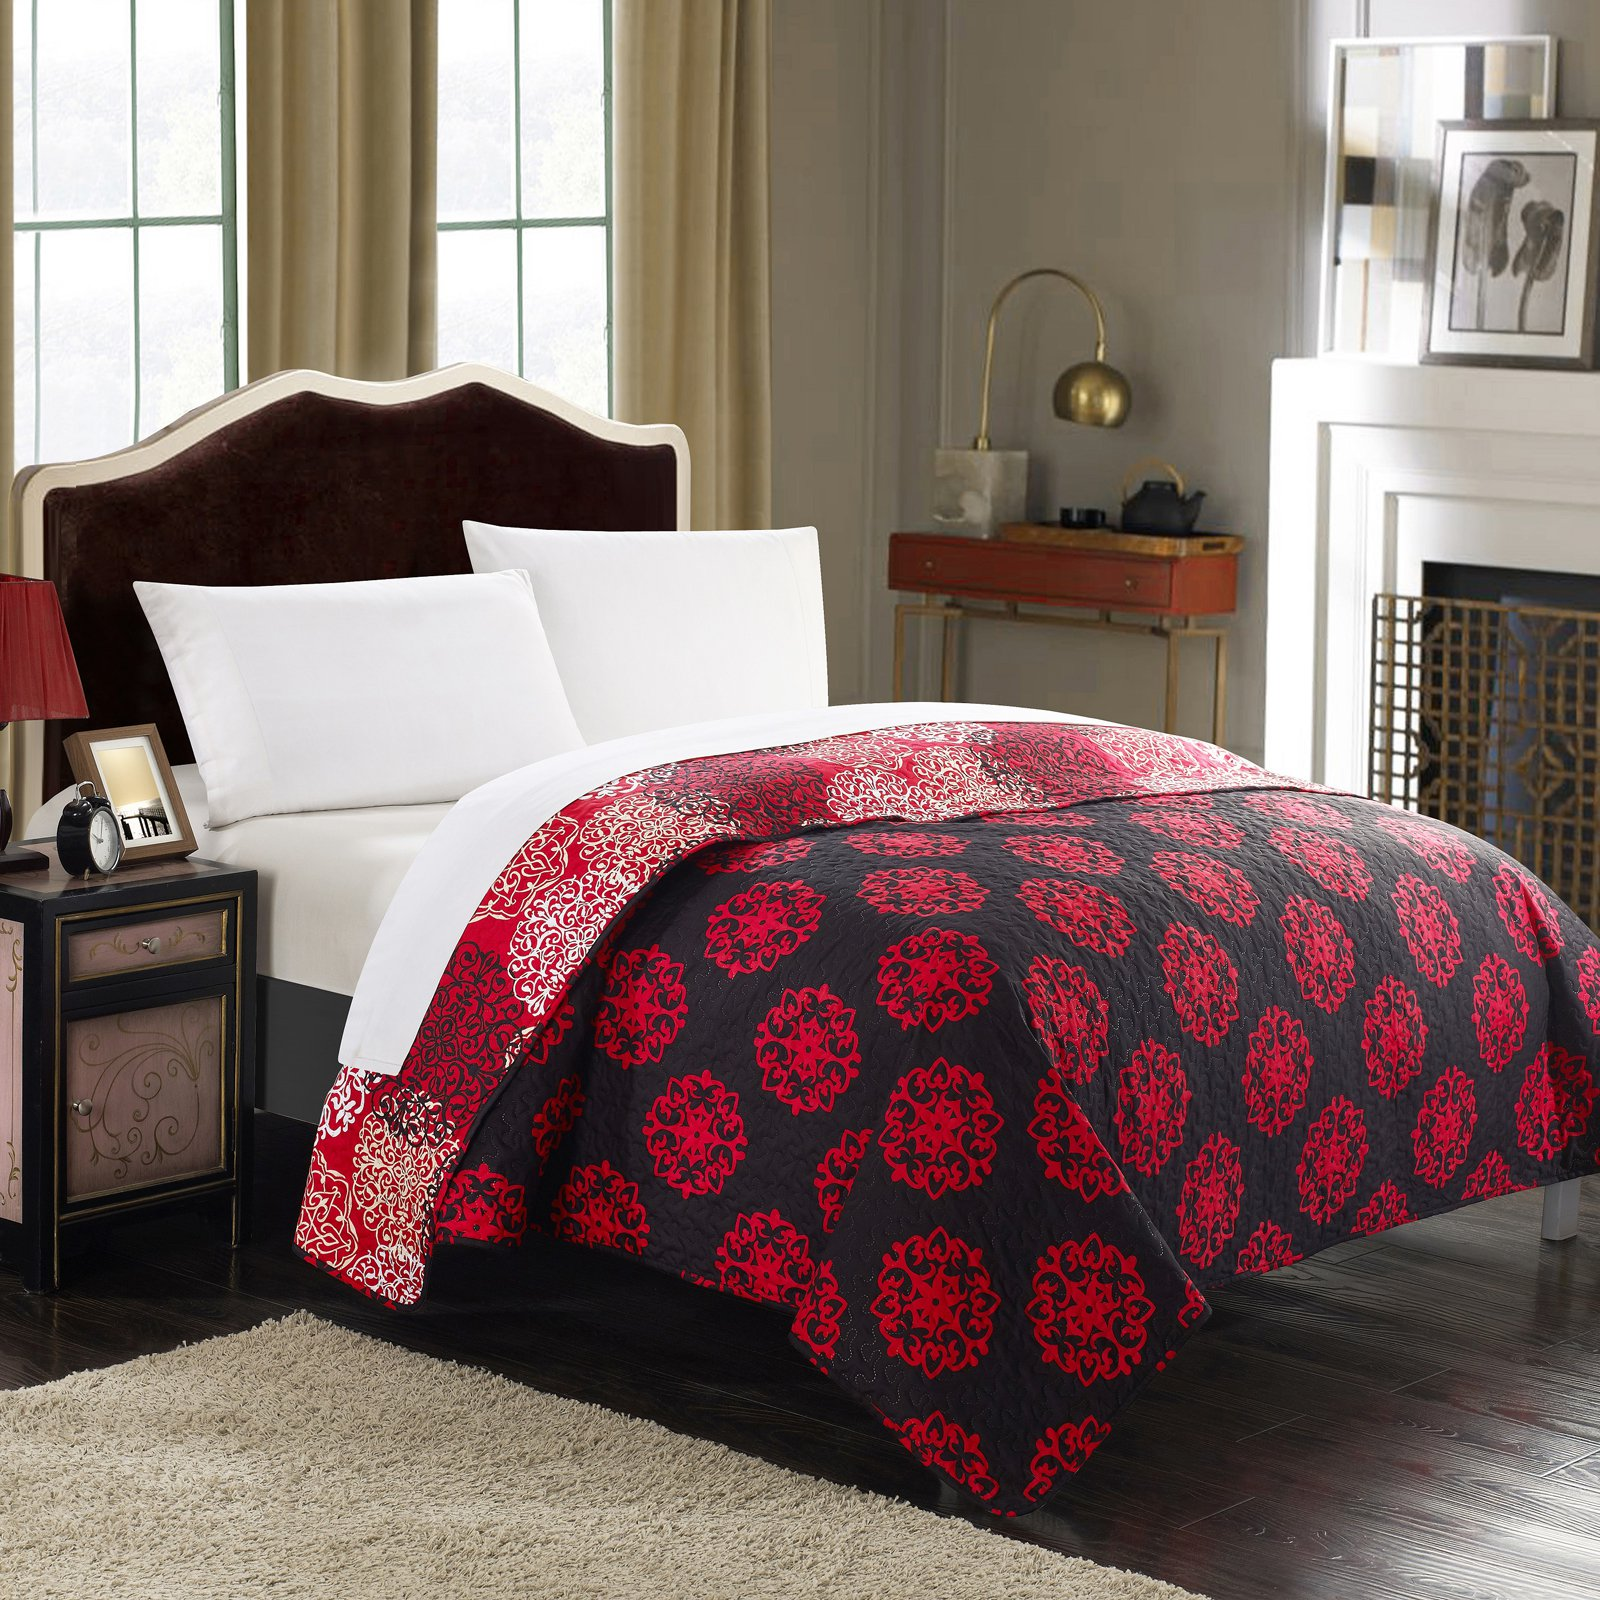 Chic Home 1-Piece Juliana Boho Quilt Set